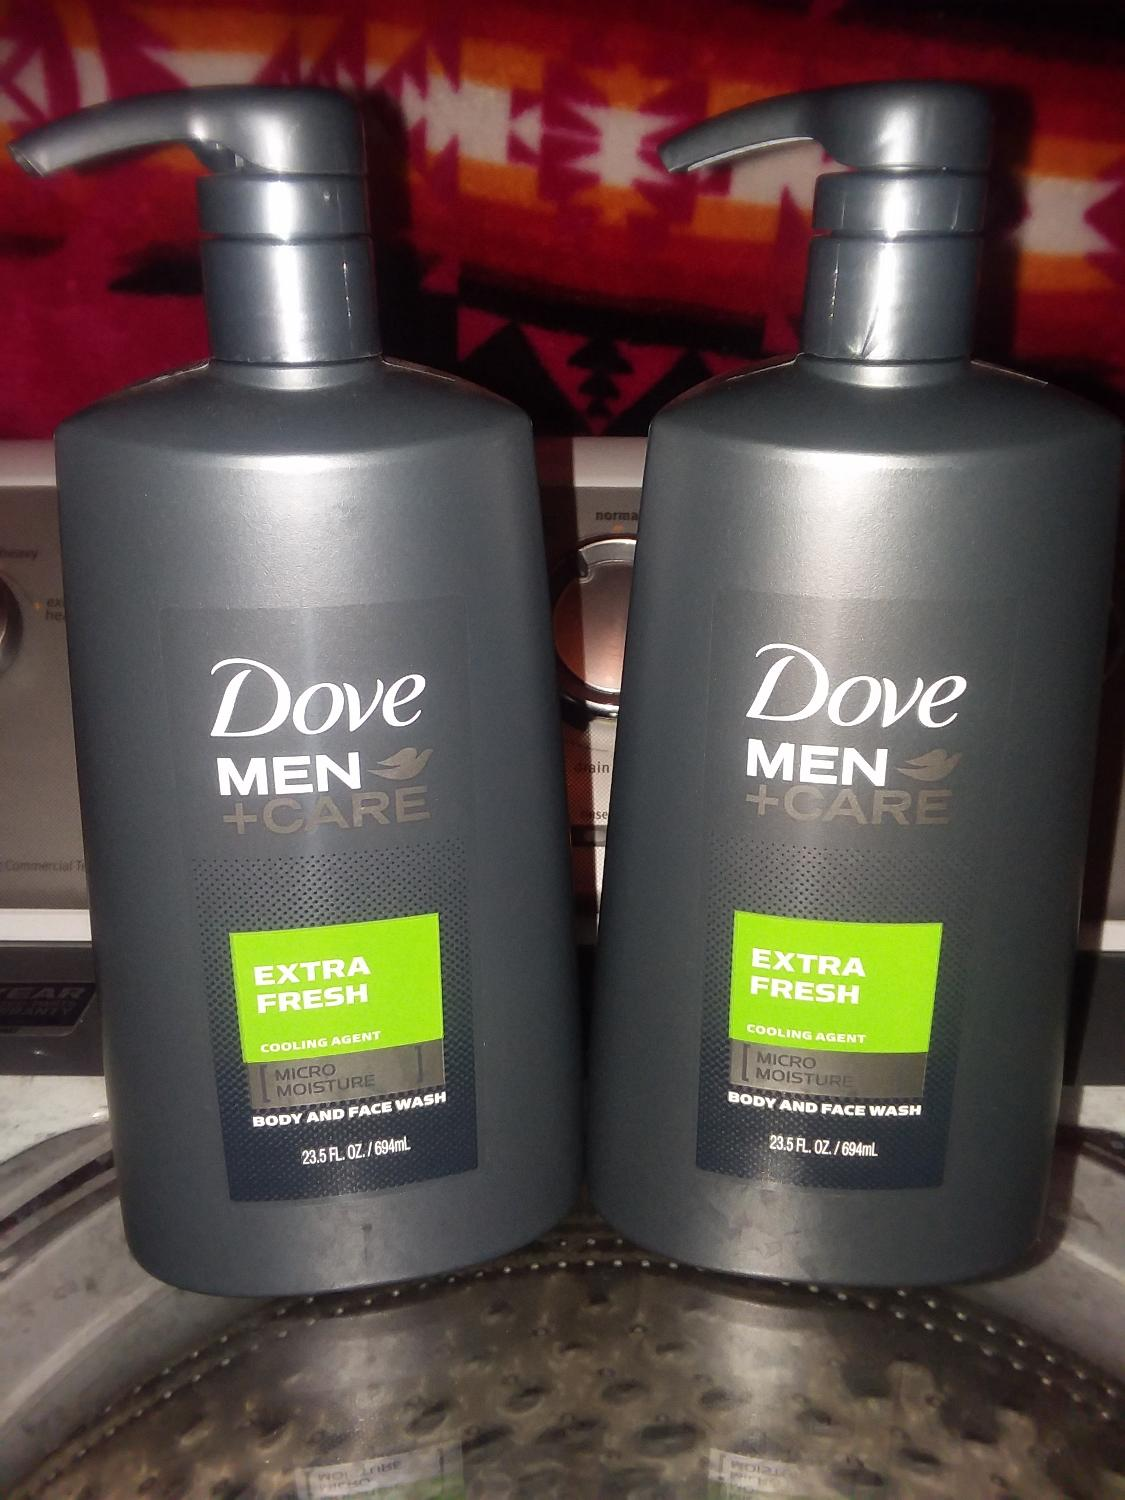 Best Dove Men Body And Face Wash For Sale In Temecula California For 2020